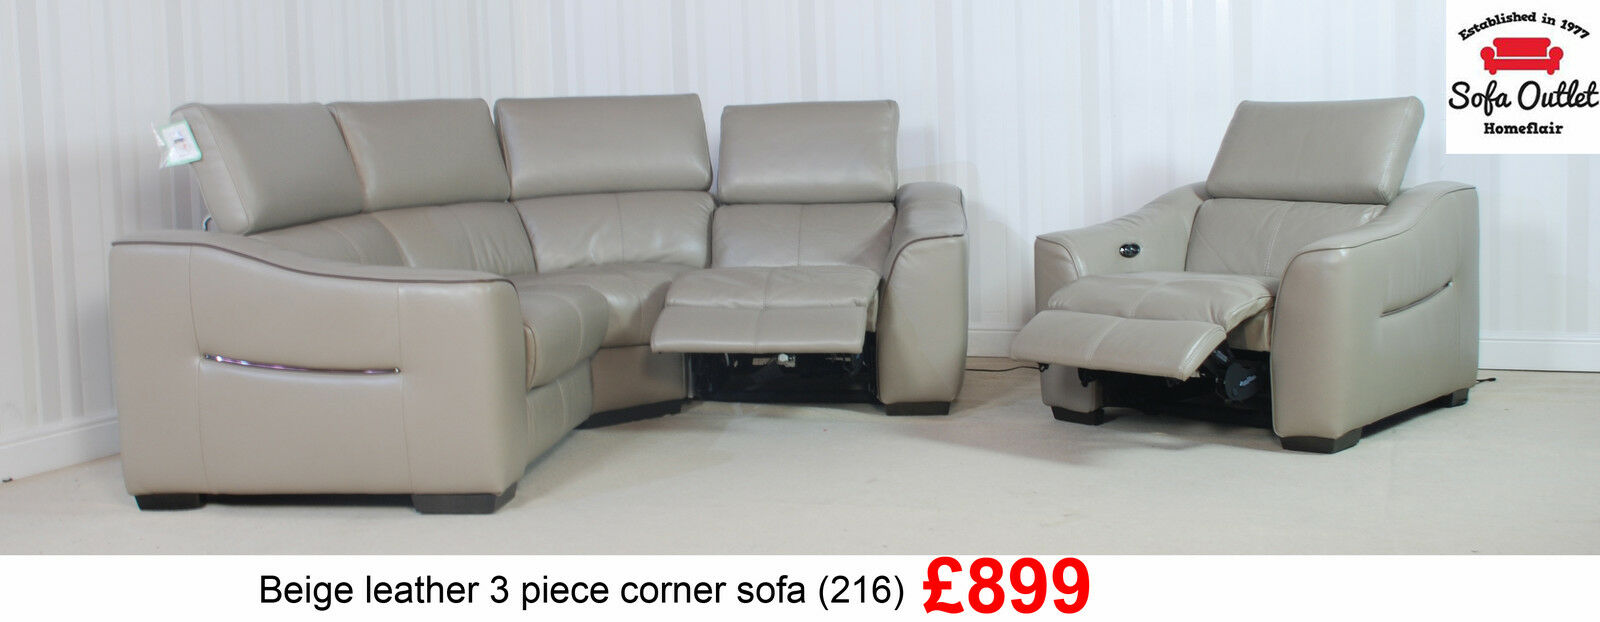 SOFAOUTLET  A/T  HOMEFLAIR